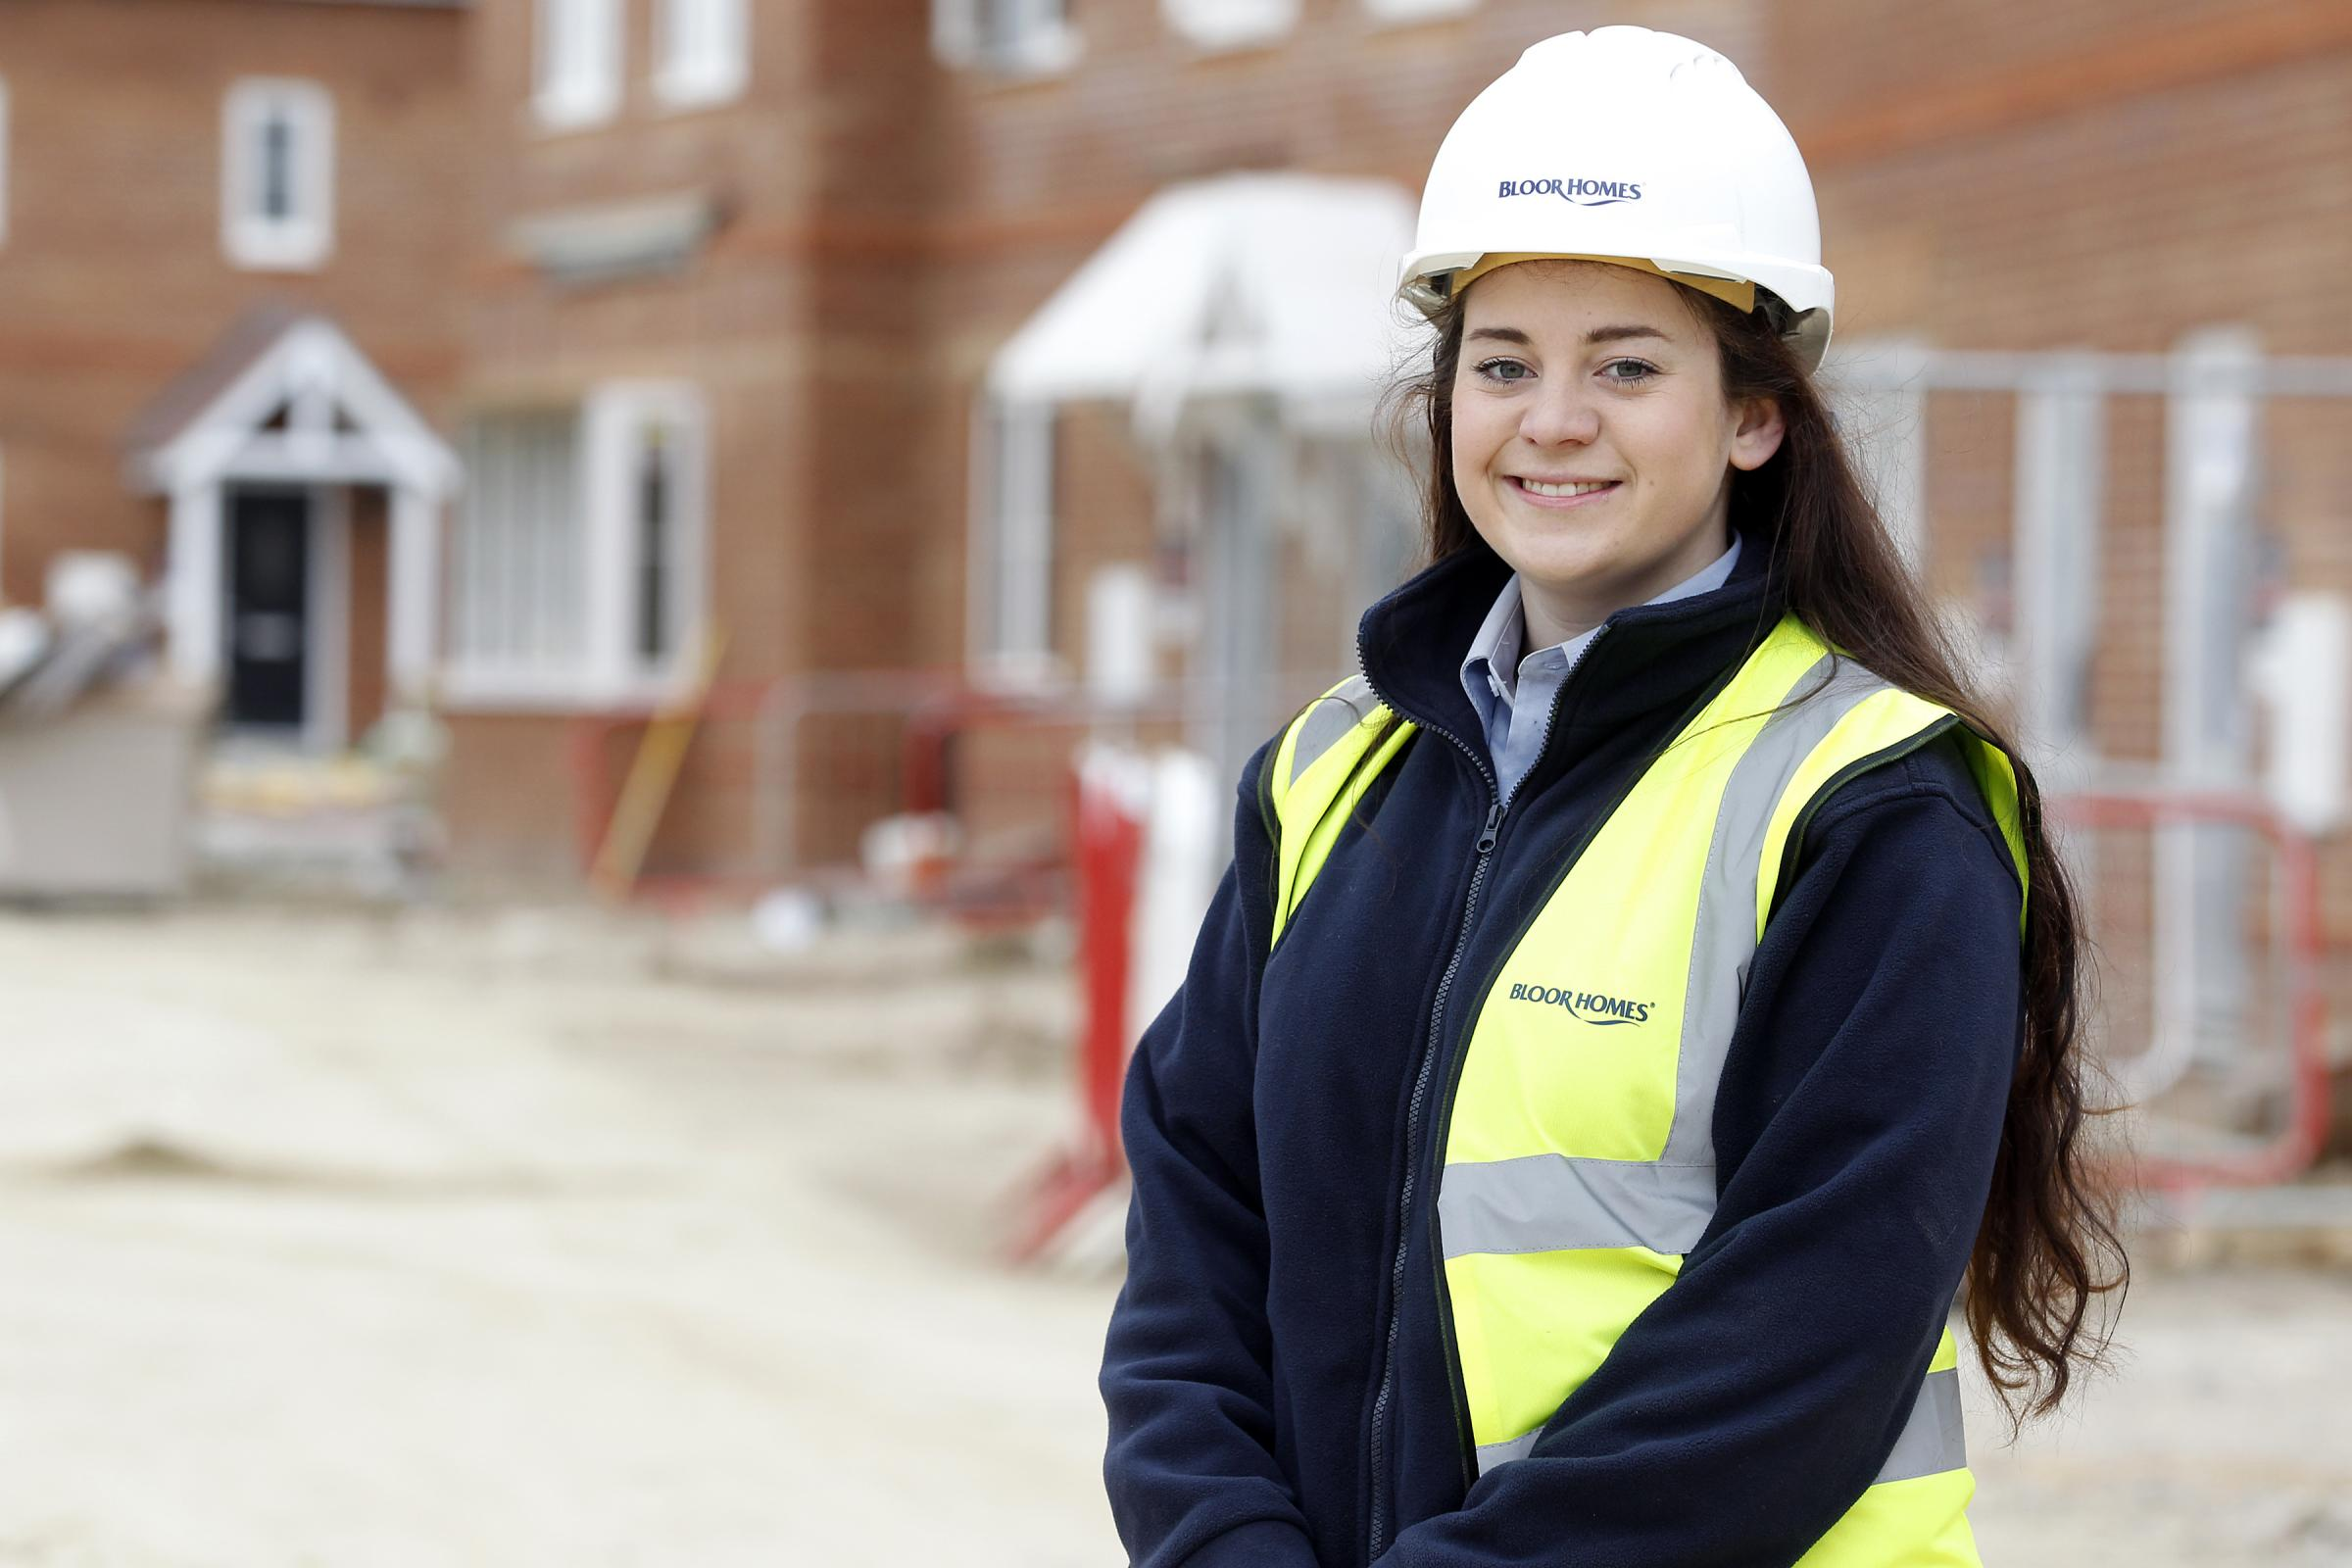 Samantha Lees Bloor Homes Trainee Site Manager at Laurel Grove development in Fareham, Hampshire.